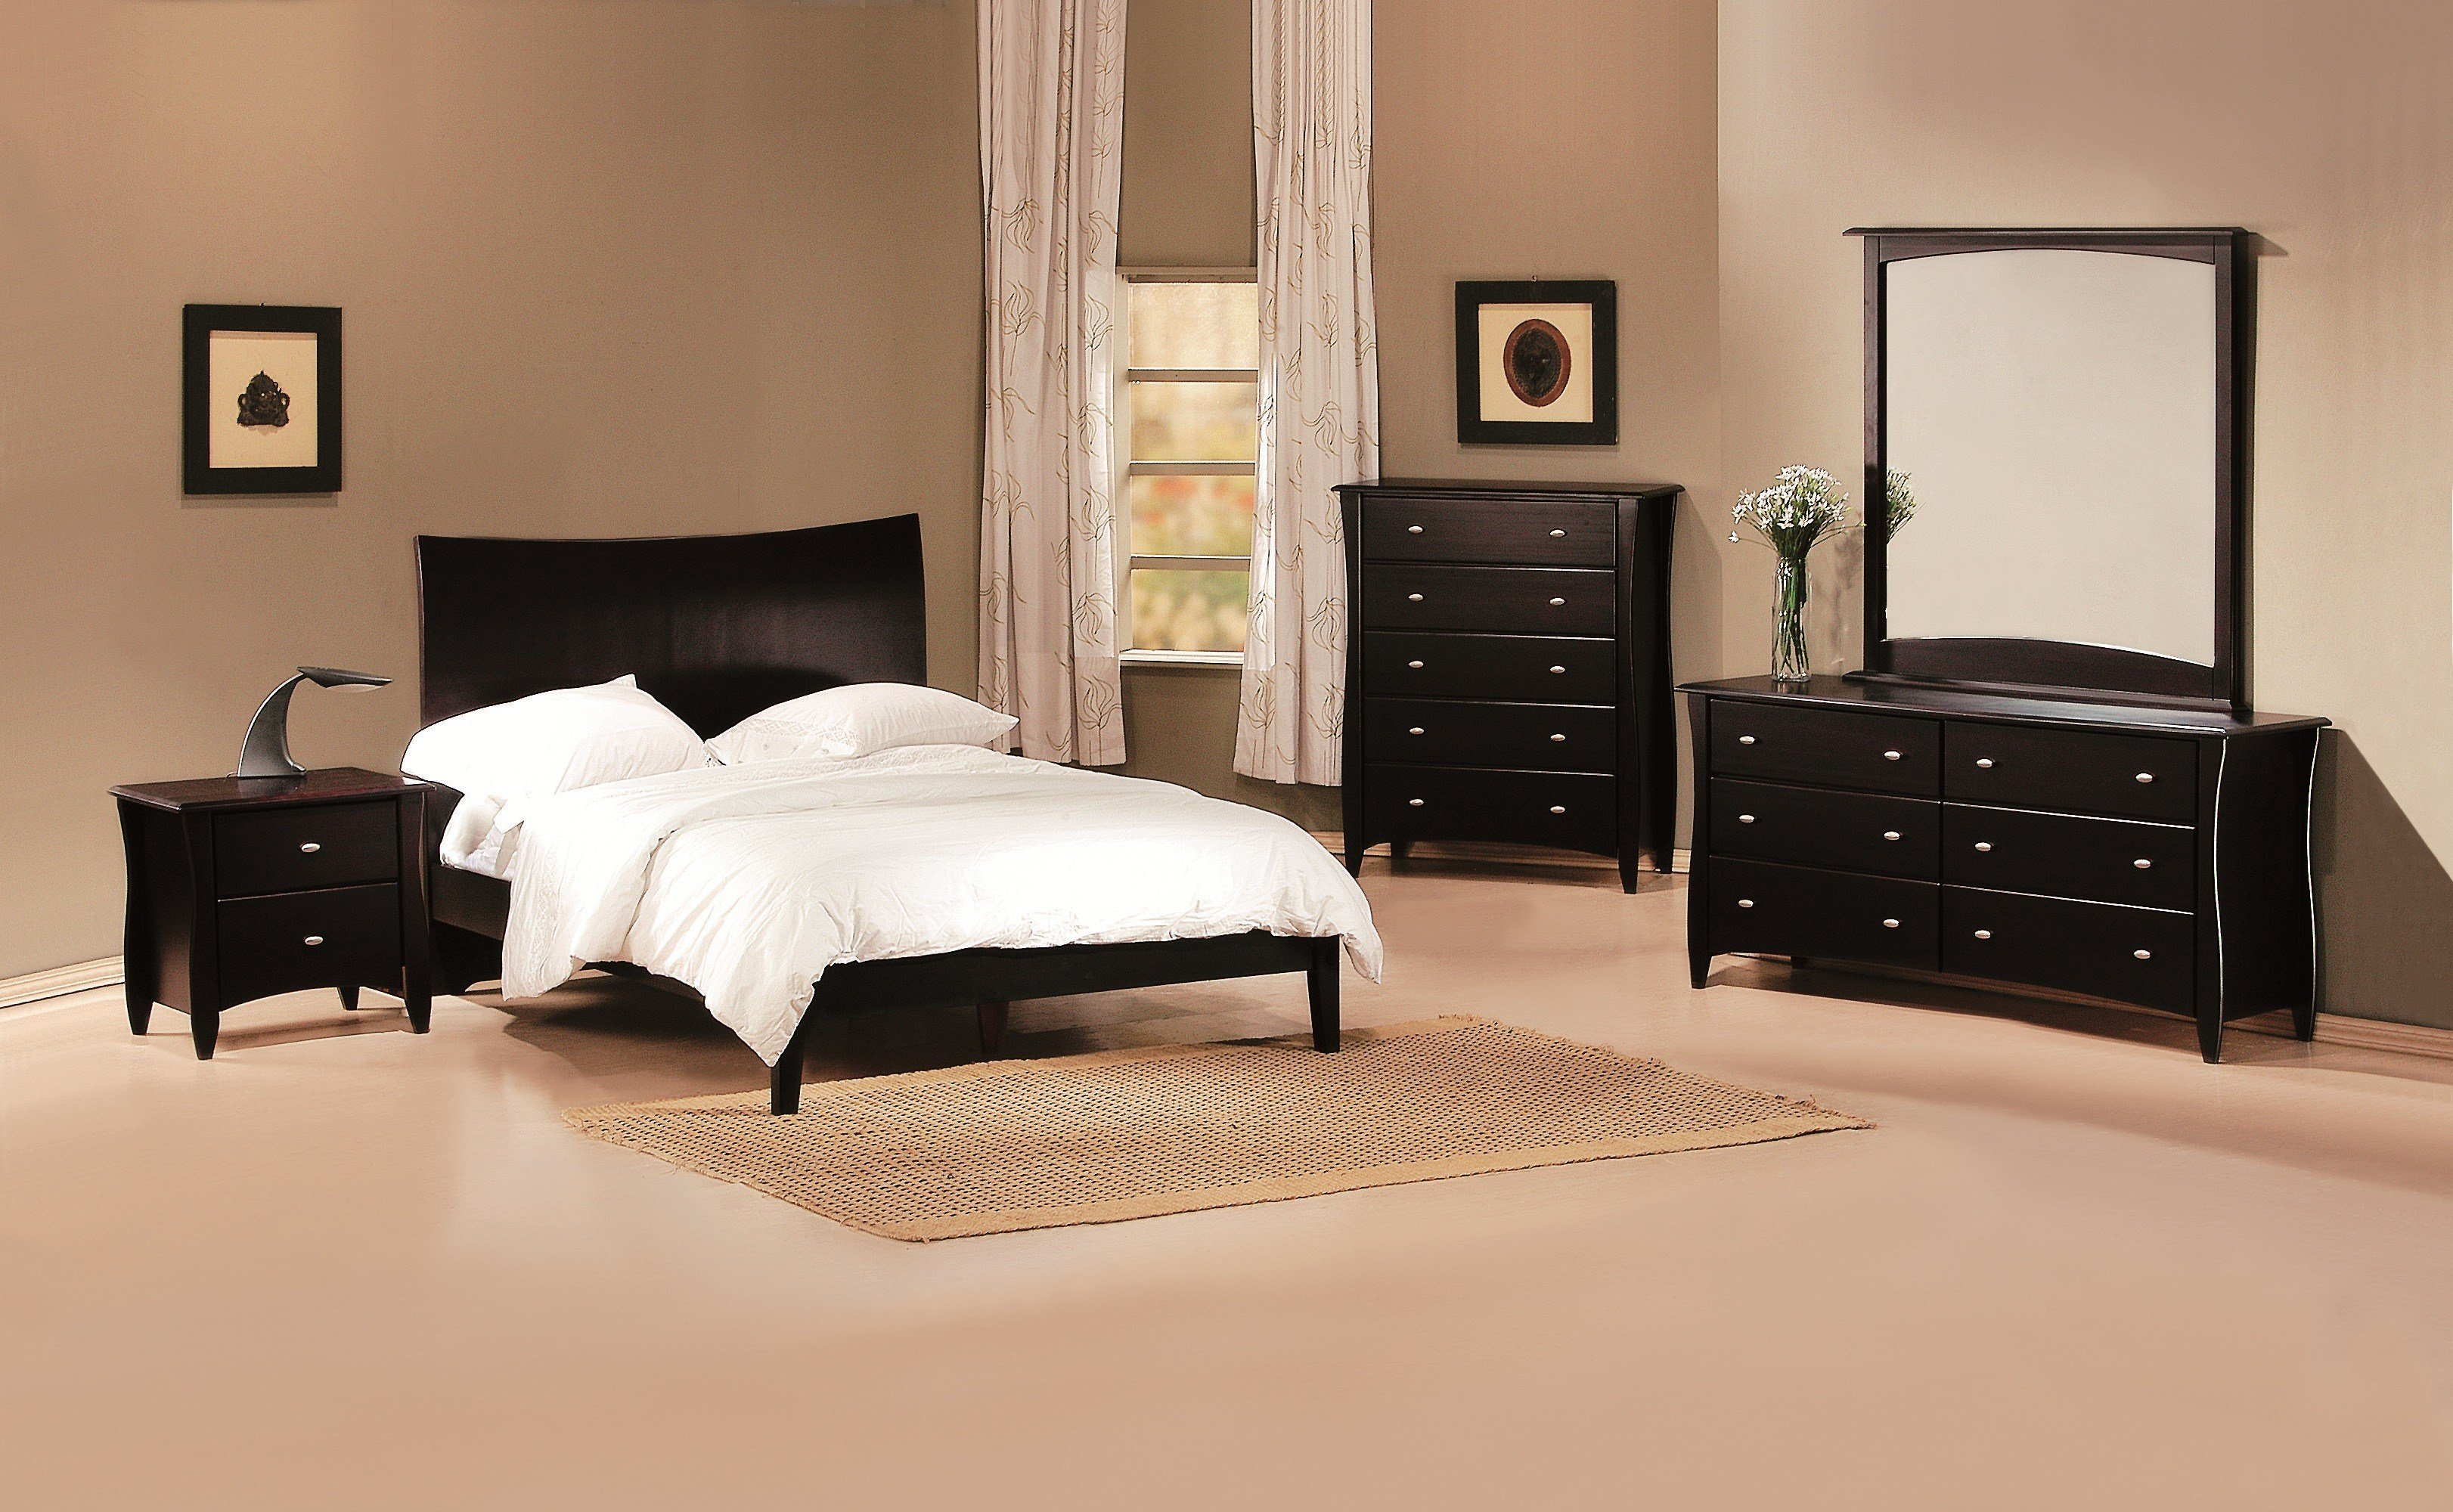 Best Superb Cheap Full Size Bedroom Sets Layout Bedroom Decorating And Disign Colors Ideas With Pictures